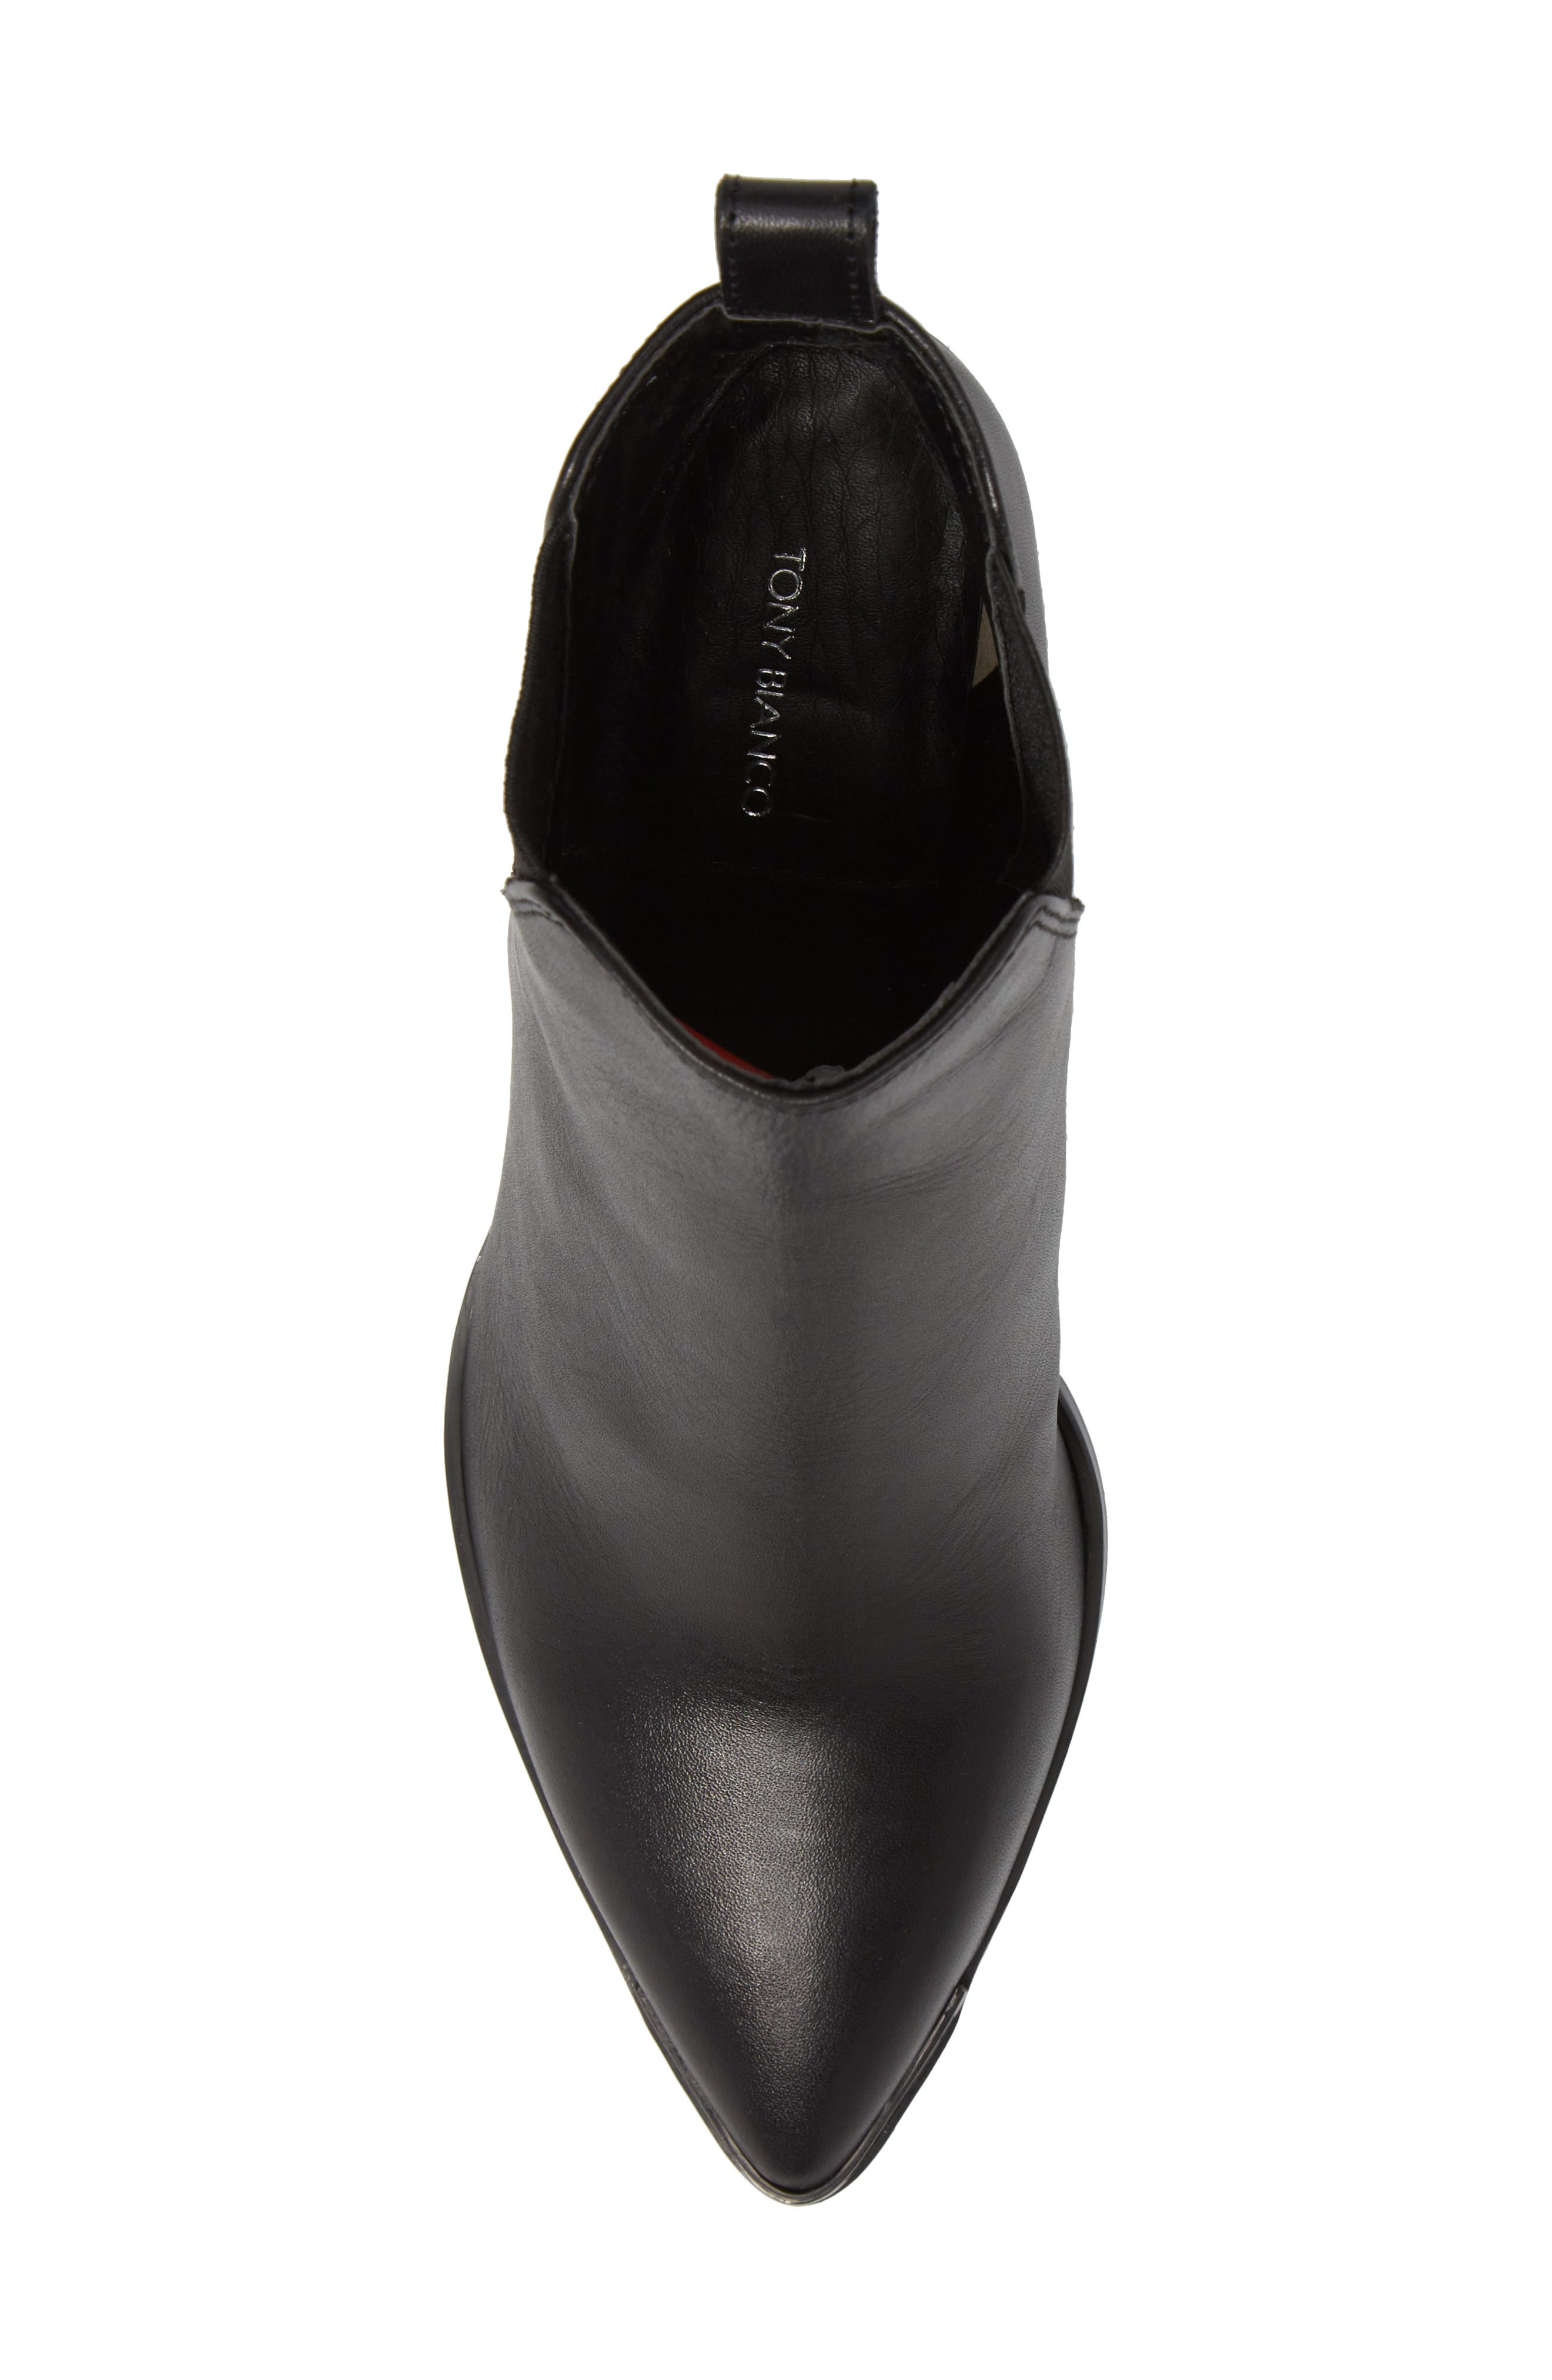 Bello Pointy Toe Bootie,                             Alternate thumbnail 5, color,                             Black Jetta Leather